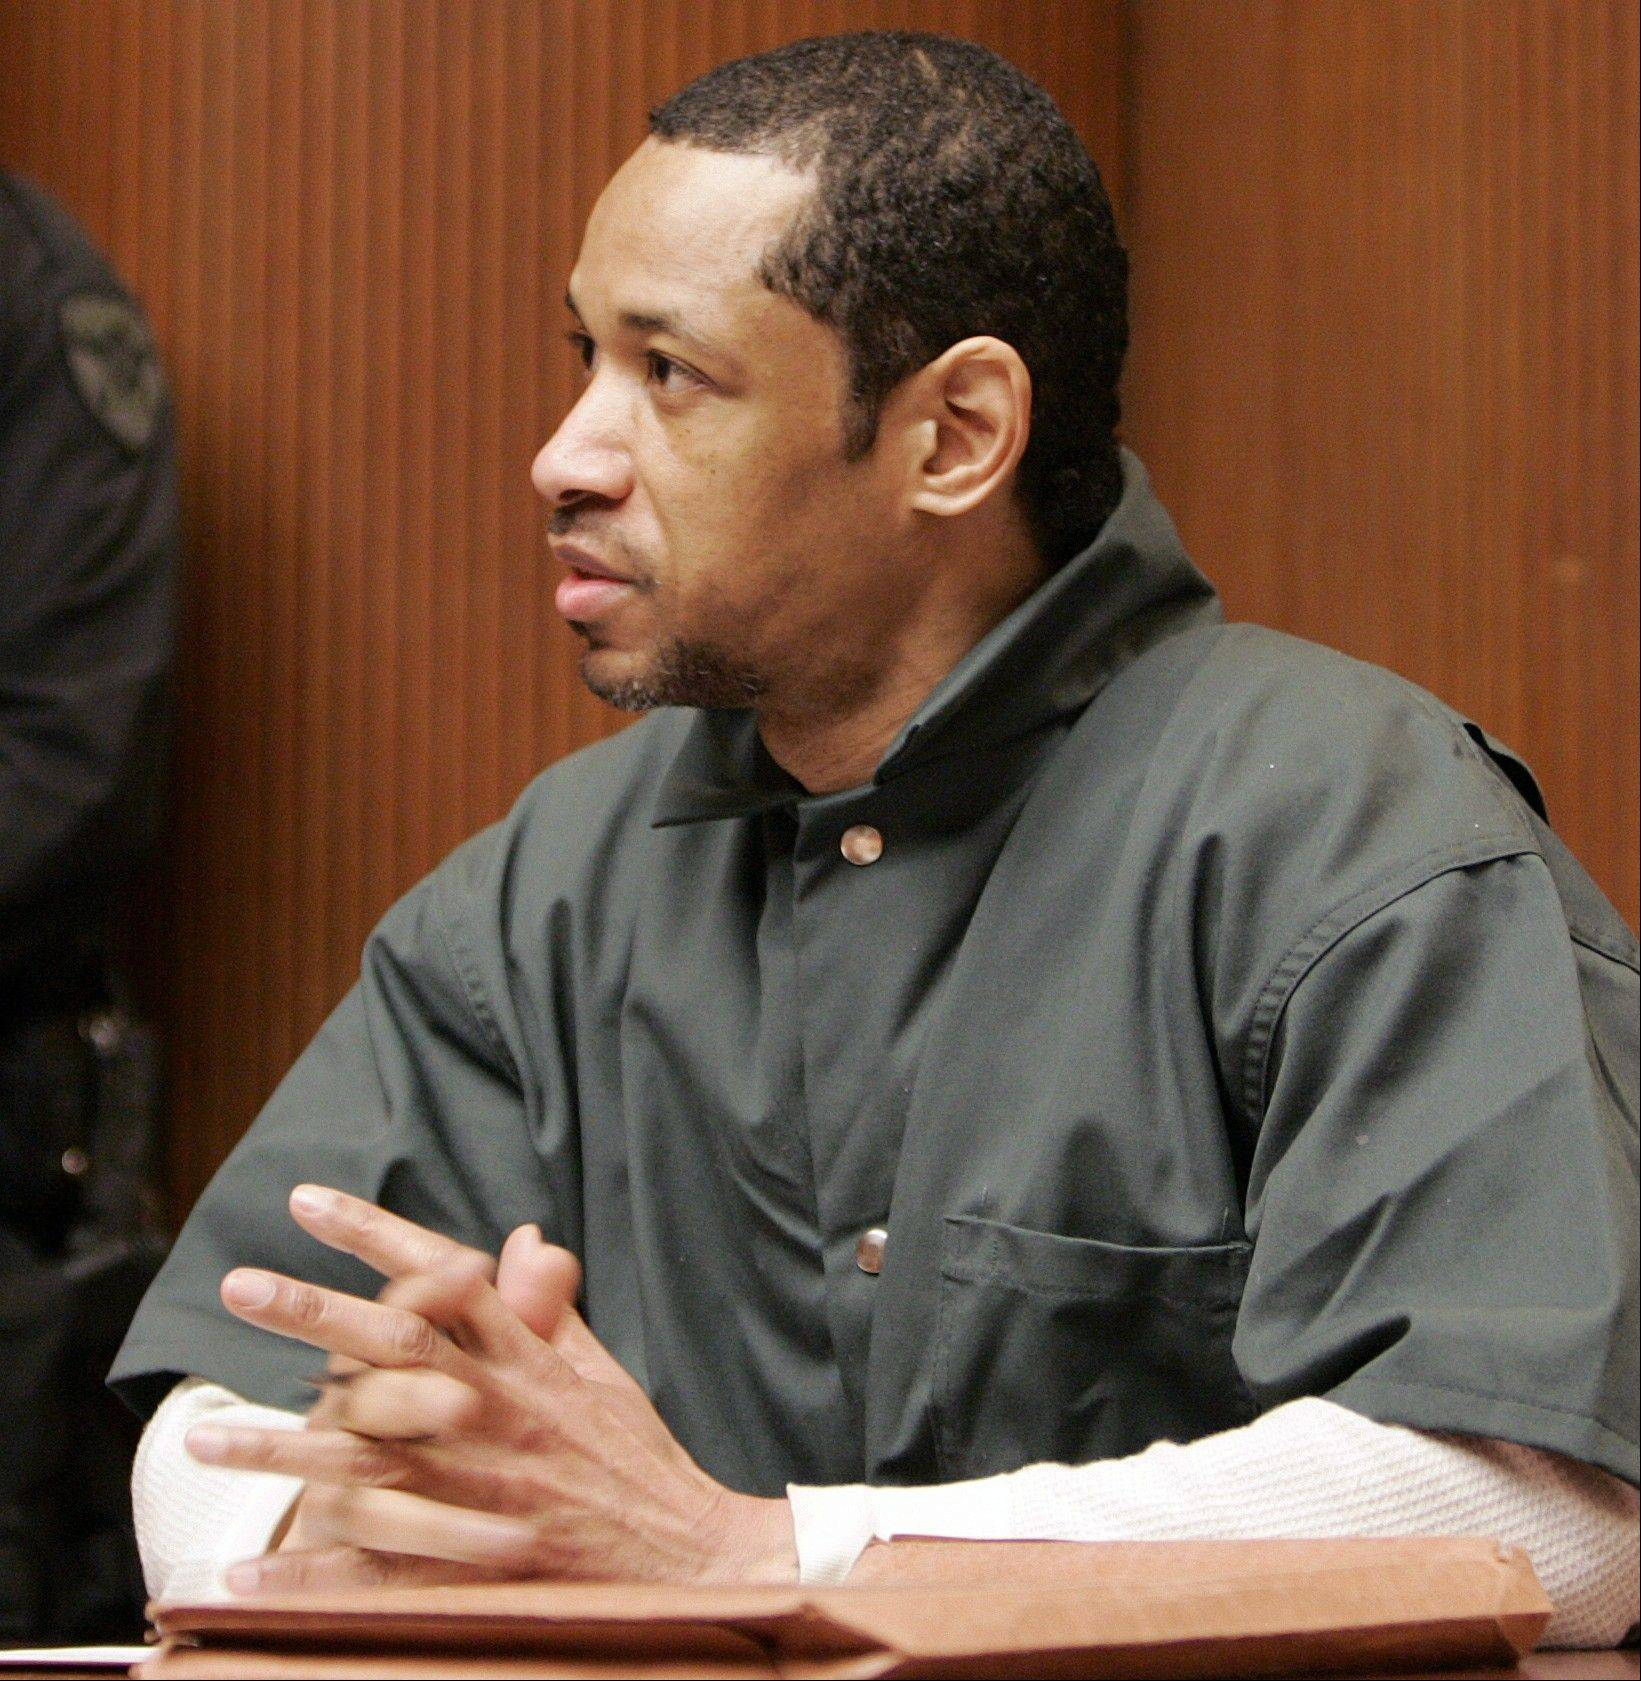 In this Friday, April 28, 2006 file photo, convicted sniper John Allen Muhammad addresses Judge James L. Ryan during a media preview before the start of his trial in Rockville, Md. Convicted D.C. sniper Lee Boyd Malvo, aka John Lee Malvo, said in a newspaper interview published Sunday, that the devastated reaction of a victim�s husband made him feel like �the worst piece of scum.� Malvo expresses remorse in the interview with The Washington Post and urged the families of victims to try and forget about him and his partner, Muhammad, so they can move on. Tuesday marks the 10th anniversary of the beginning of the deadly spree in the Washington area carried by Malvo and Muhammad. The pair have been linked to 27 shootings across the country, including 10 fatal attacks in the Washington area.